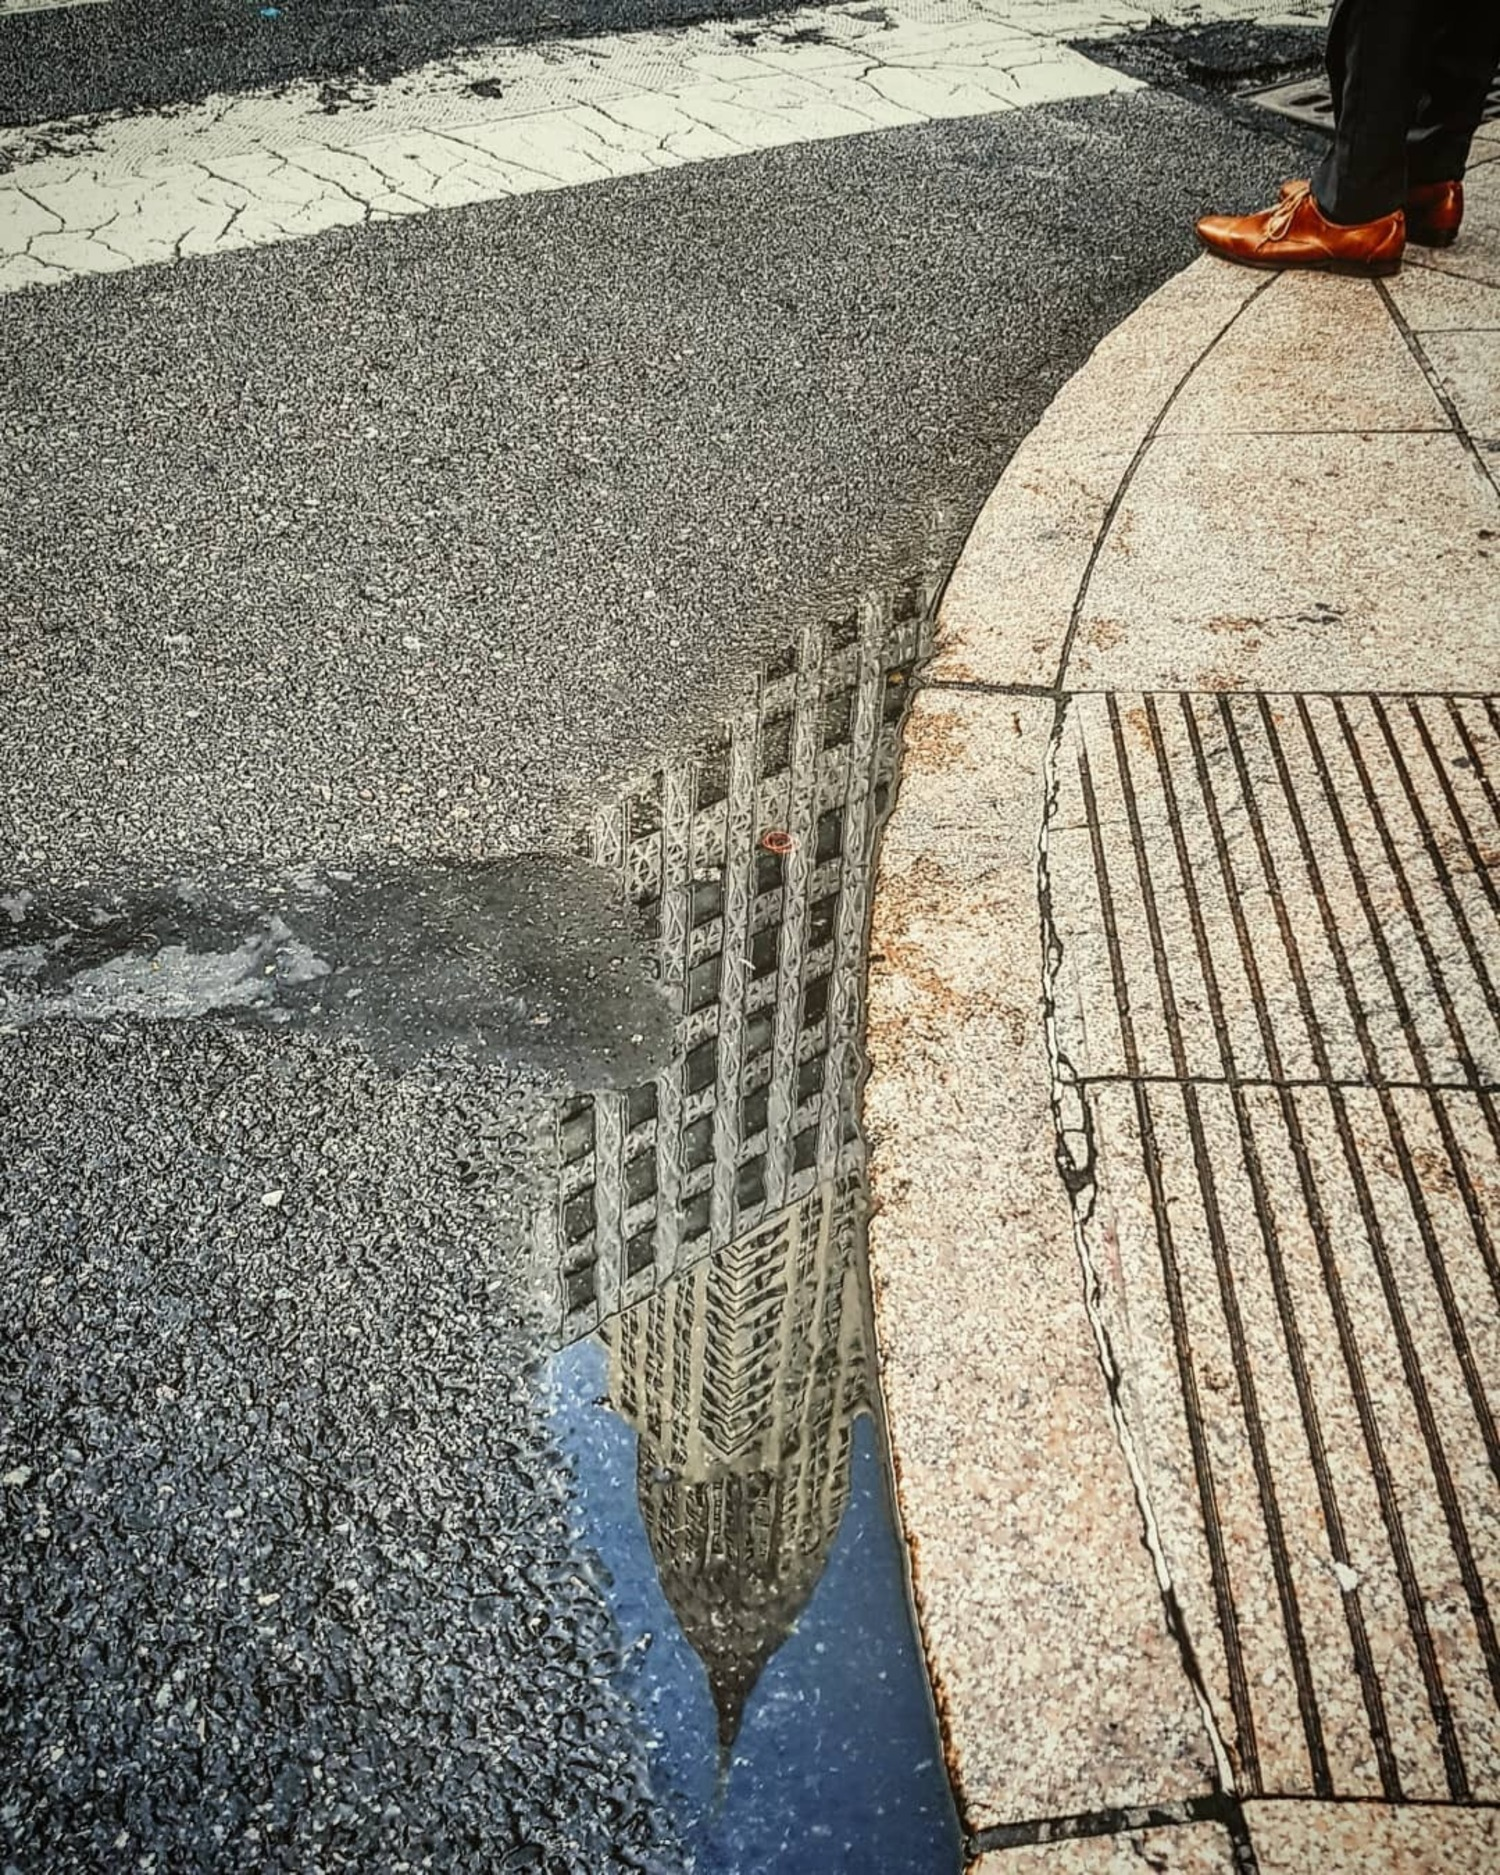 Reflection of Empire State Building, Midtown, Manhattan.